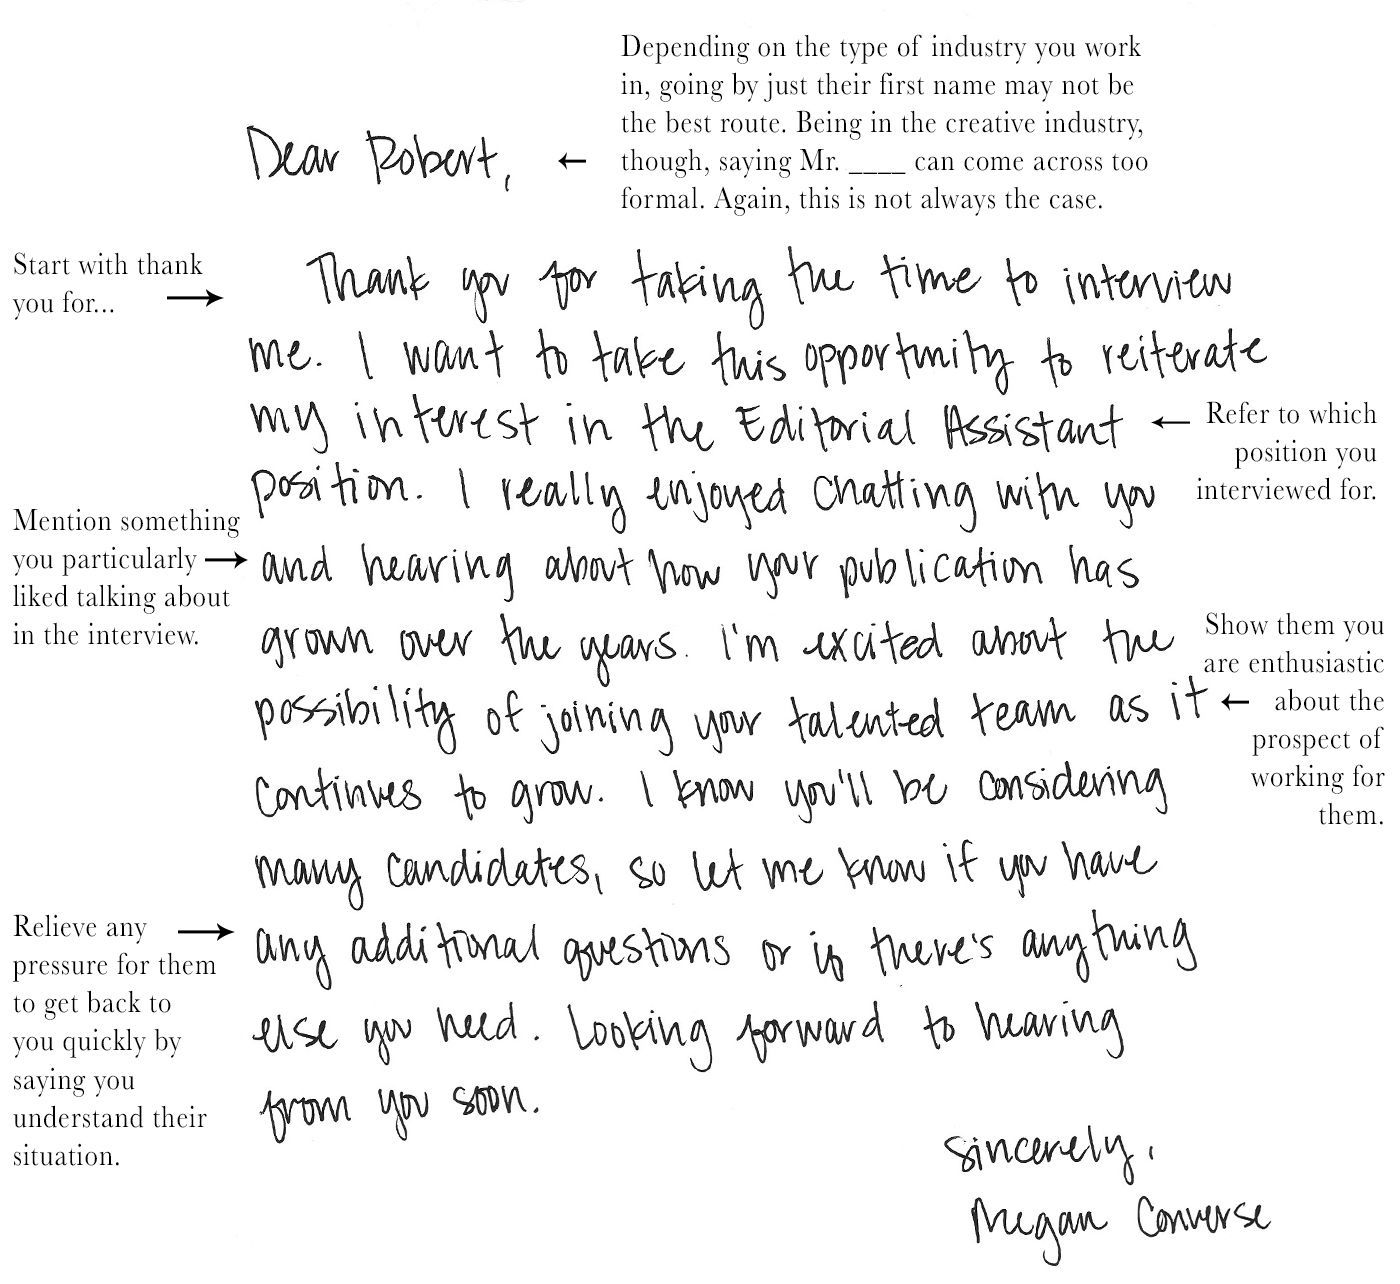 004 Dreaded Handwritten Thank You Note After Interview Template Photo Full